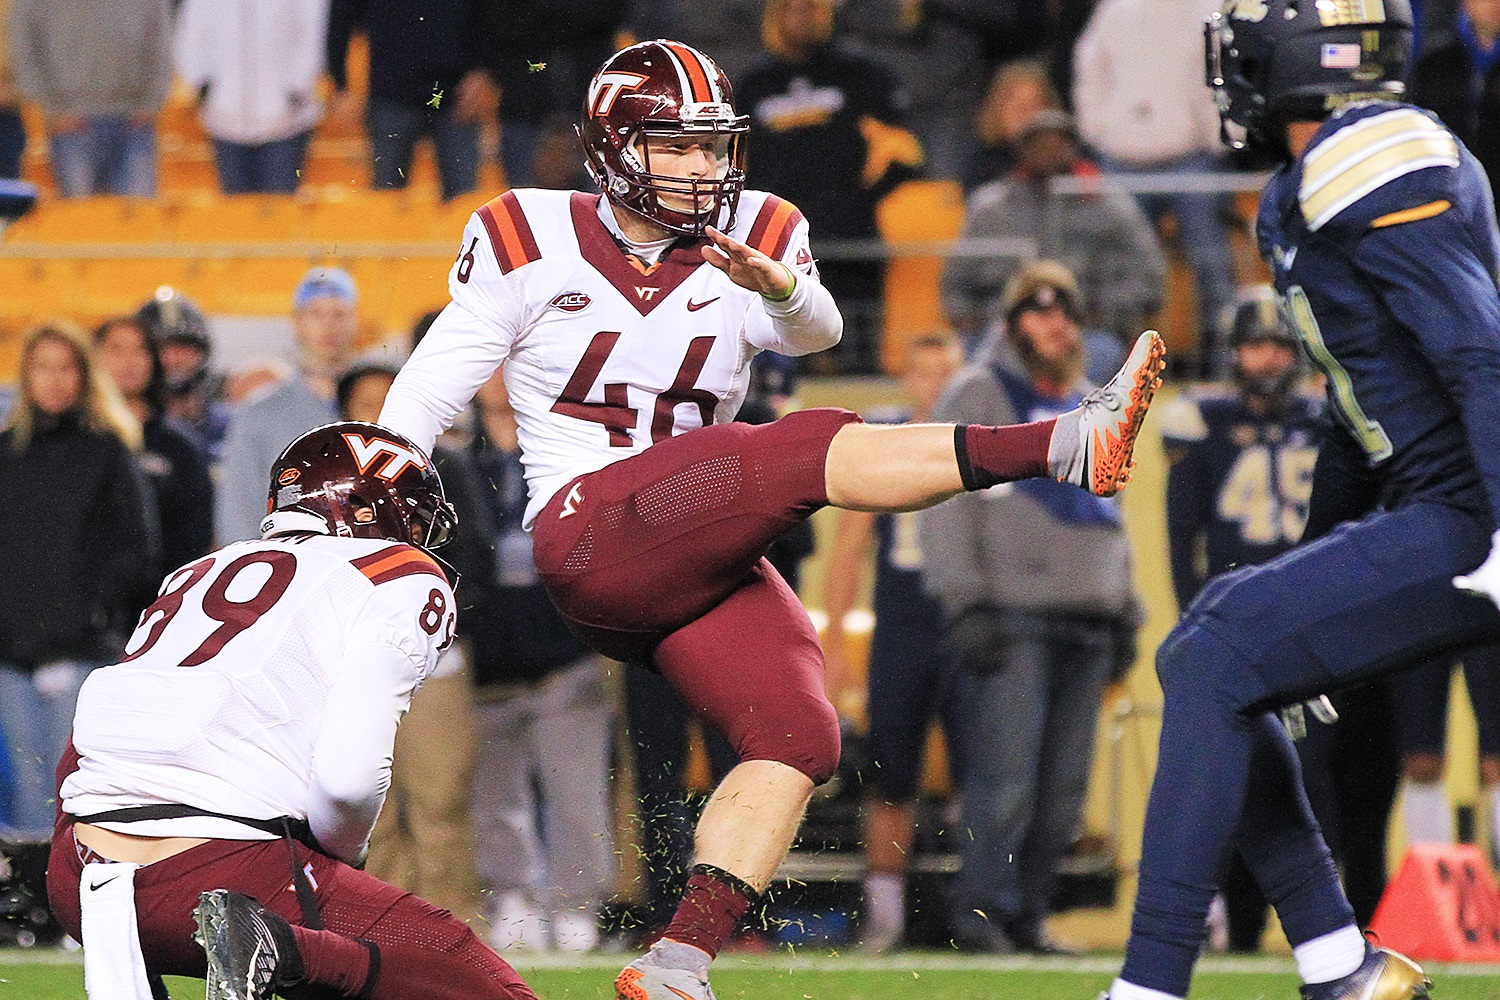 Virginia Tech Joey Slye